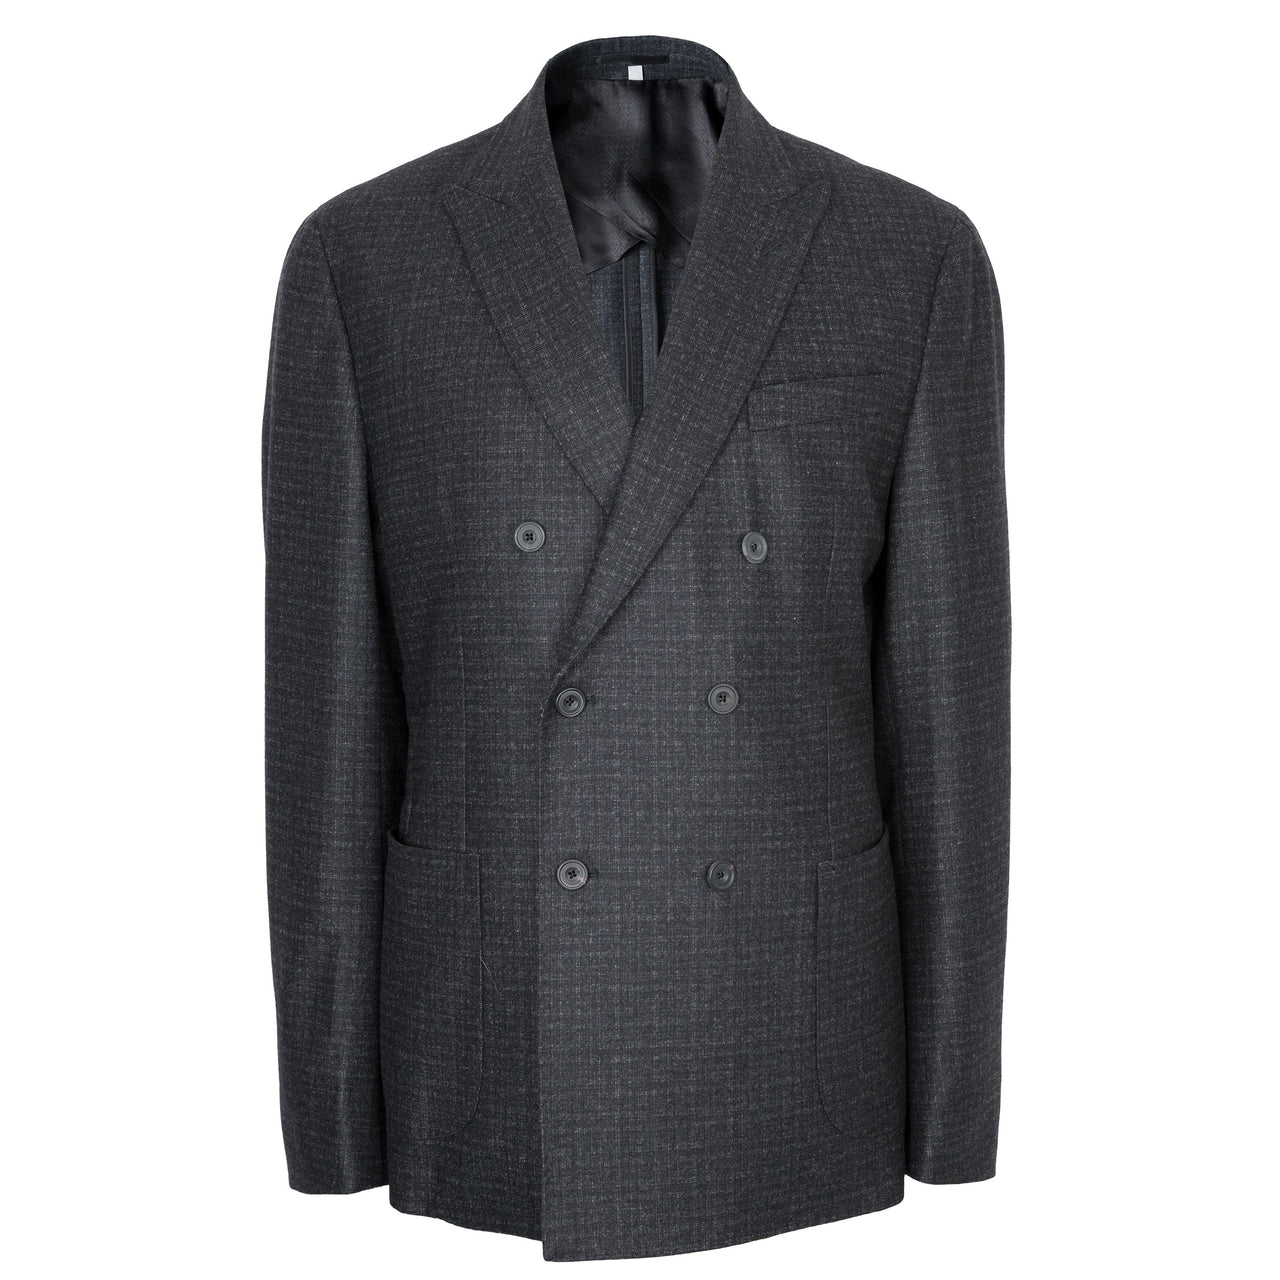 Hardy Amies Charcoal Grey Flannel Check Double Breasted Jacket